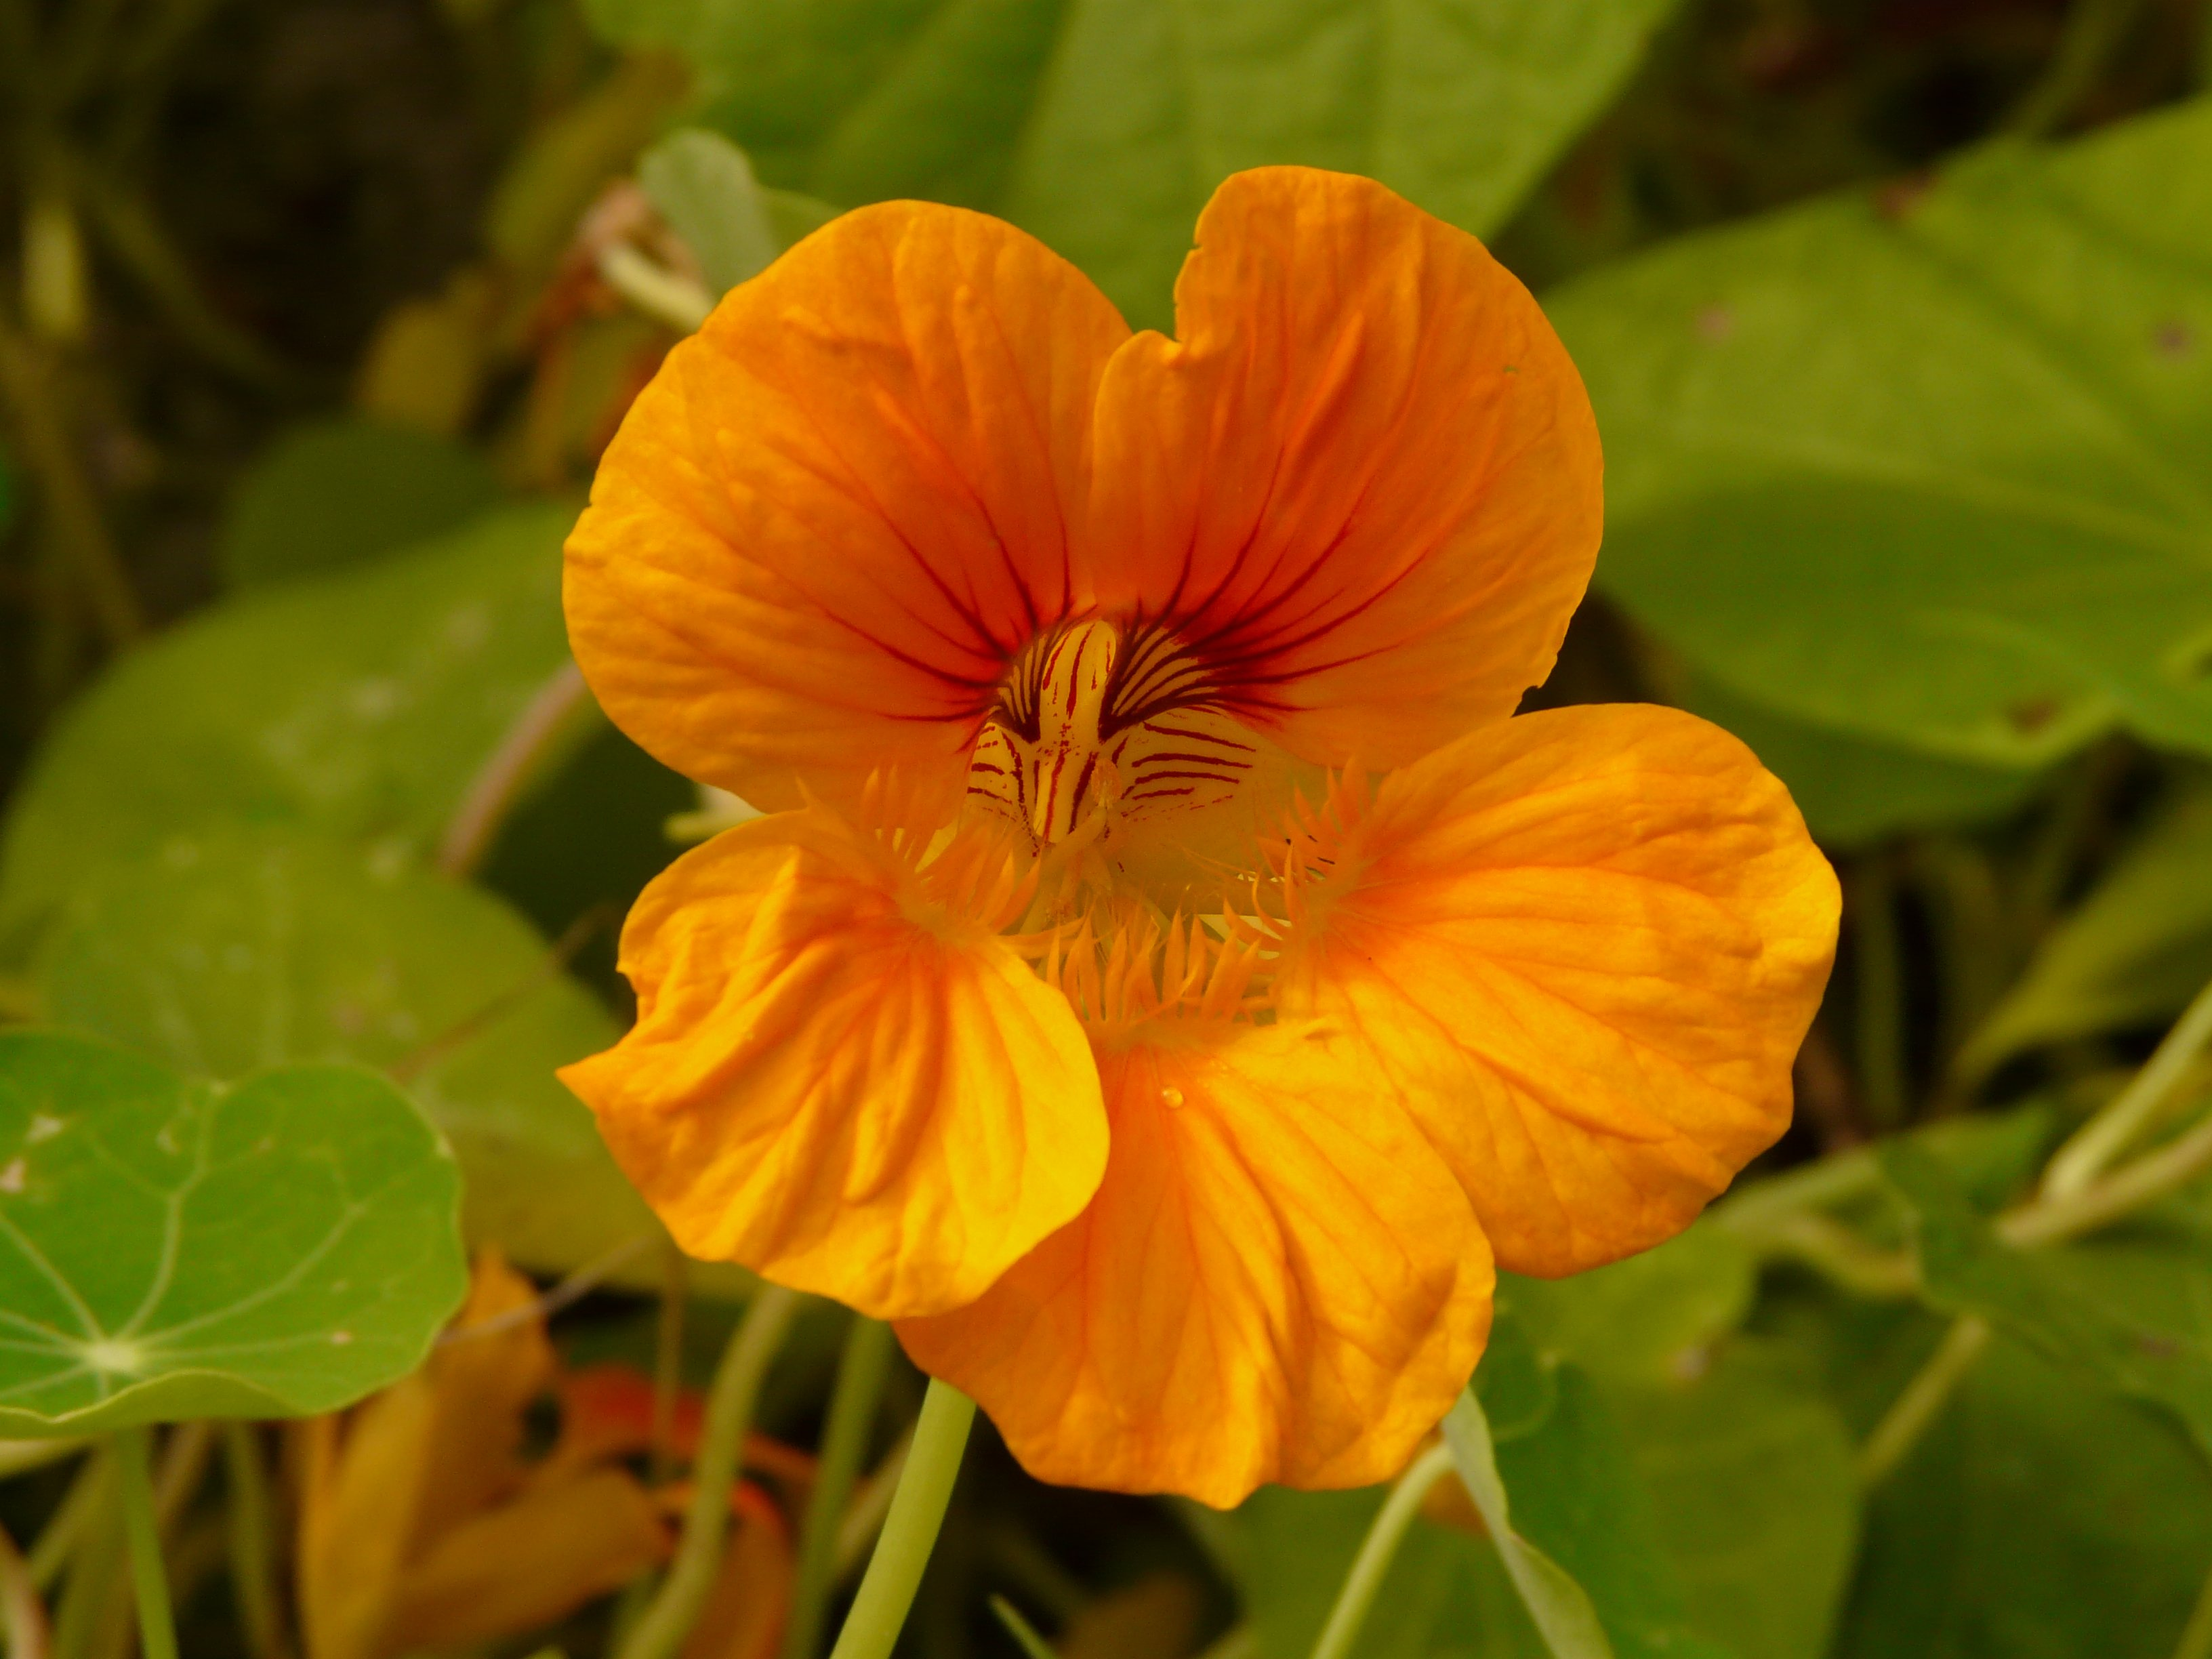 Yellow/Orange Flower with Green Leaves